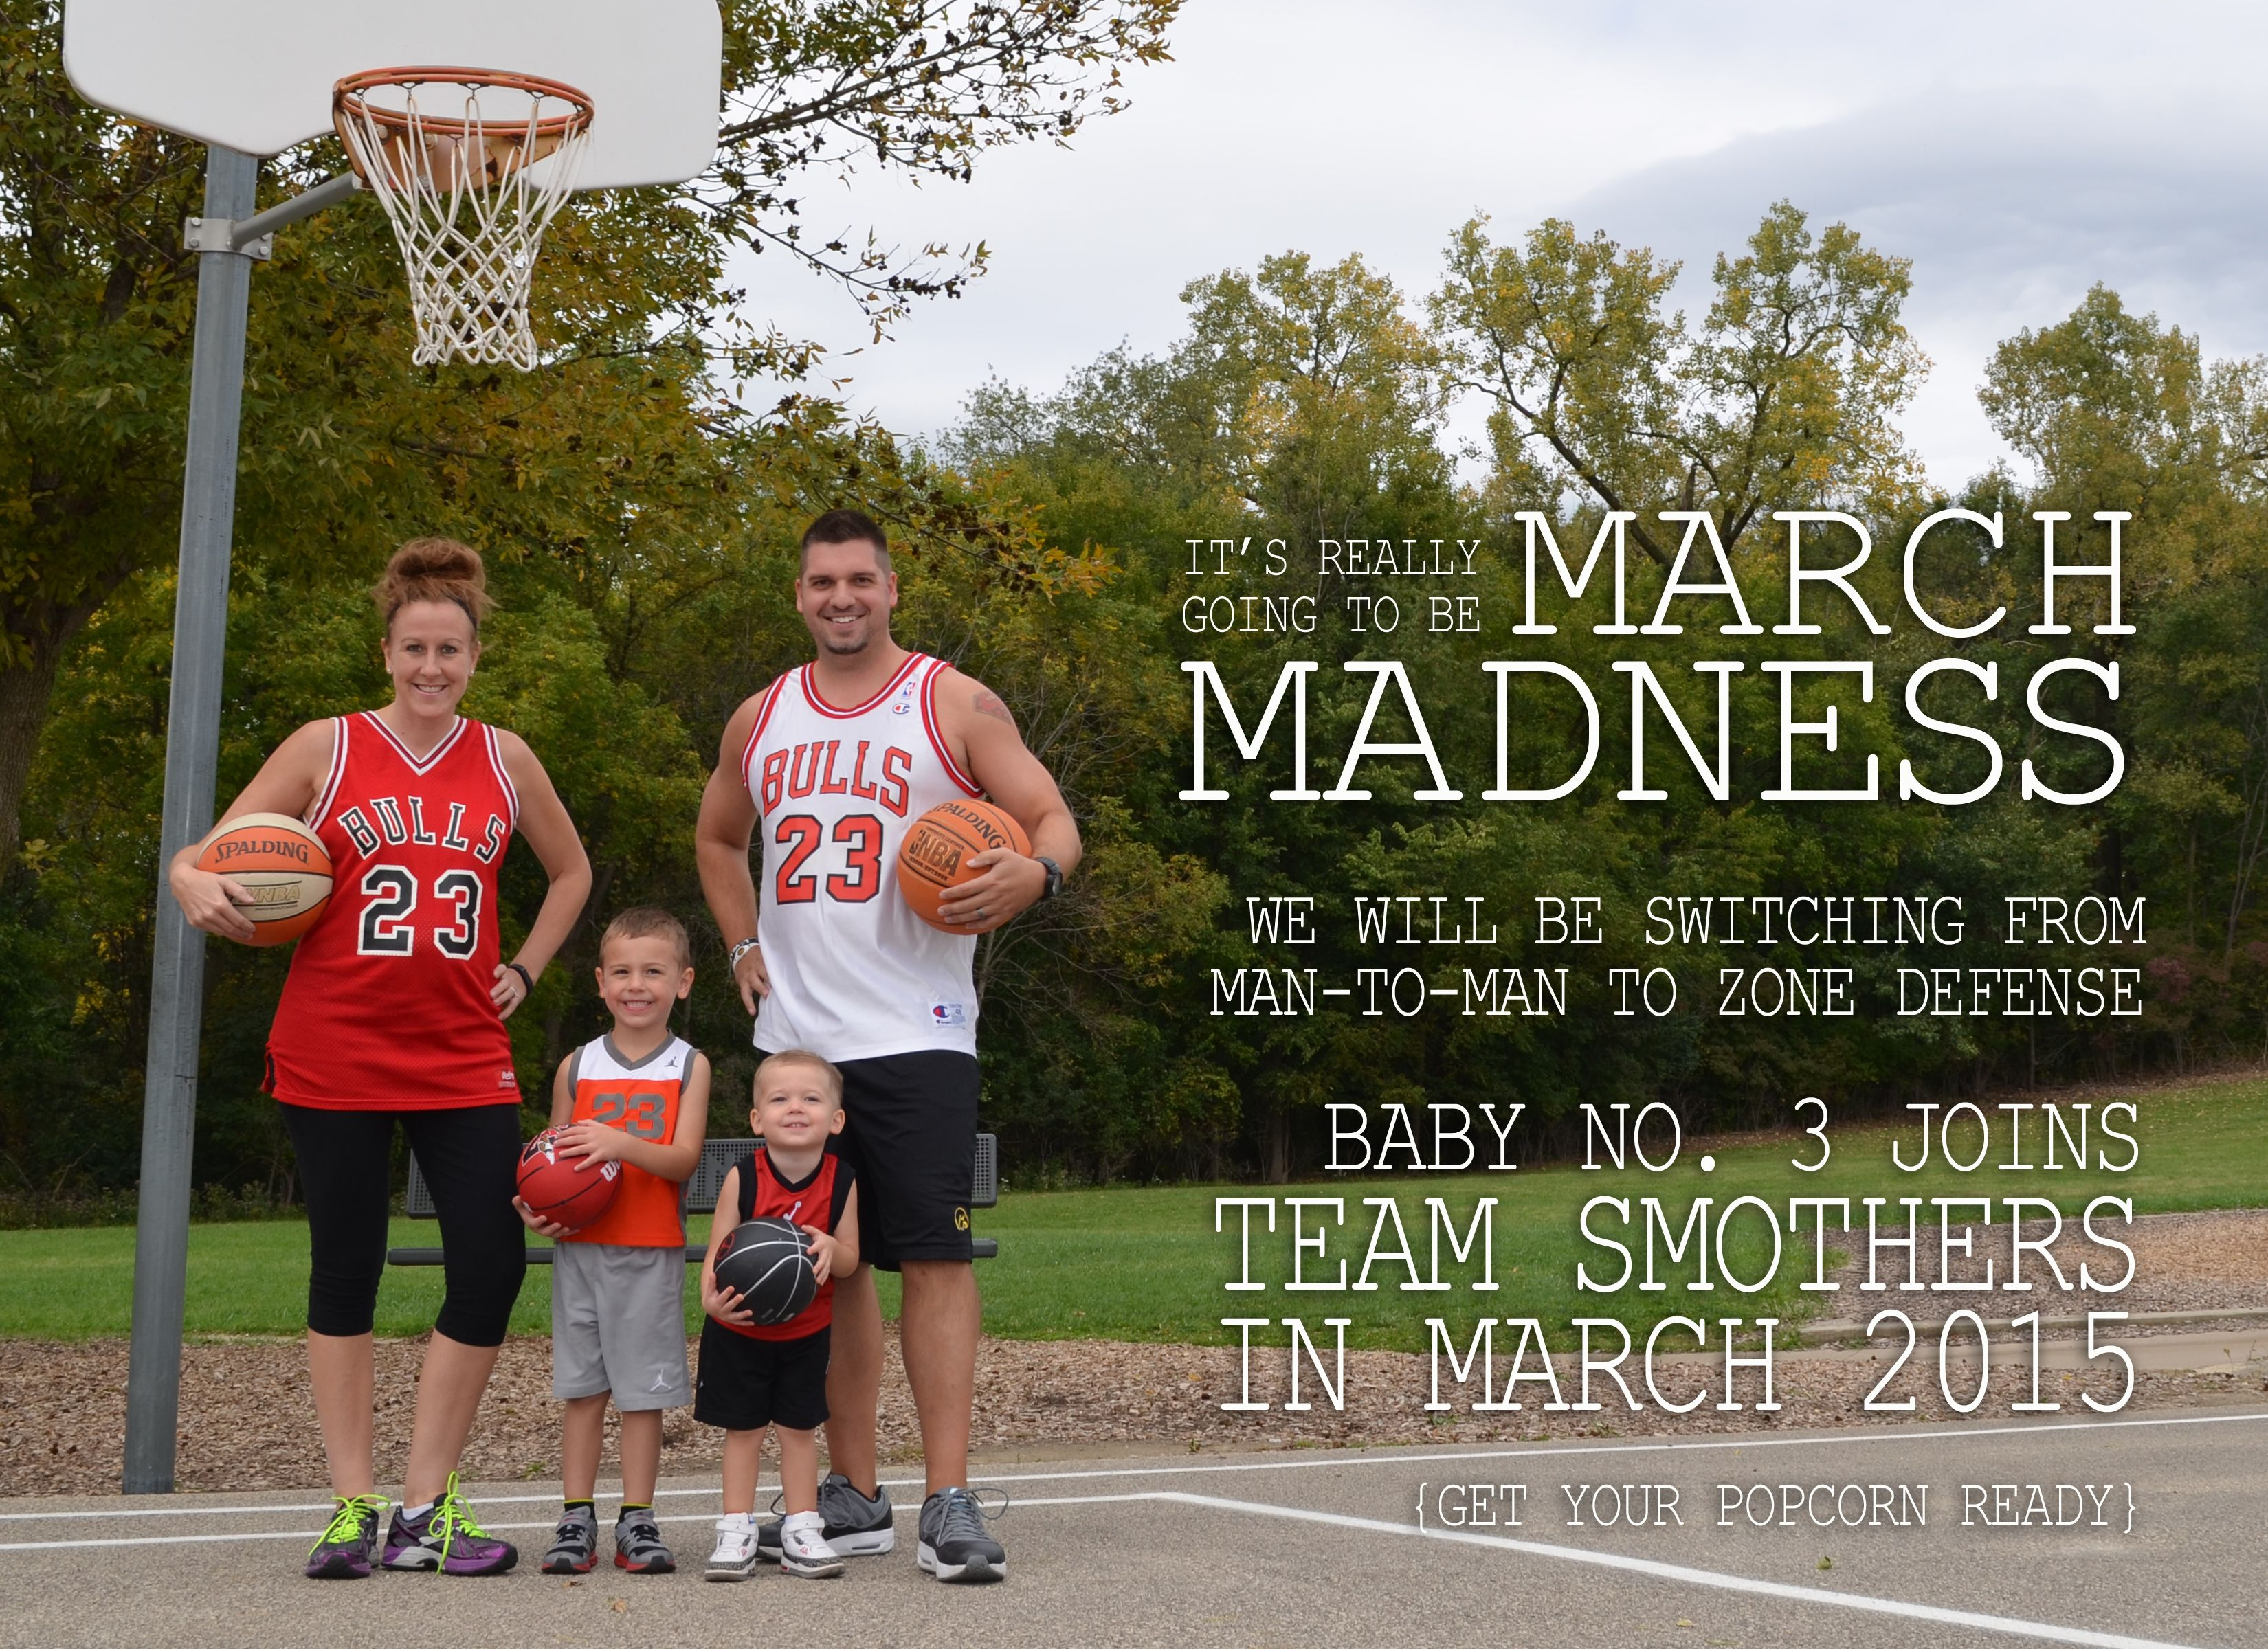 Basketballthemed baby announcement for our third child